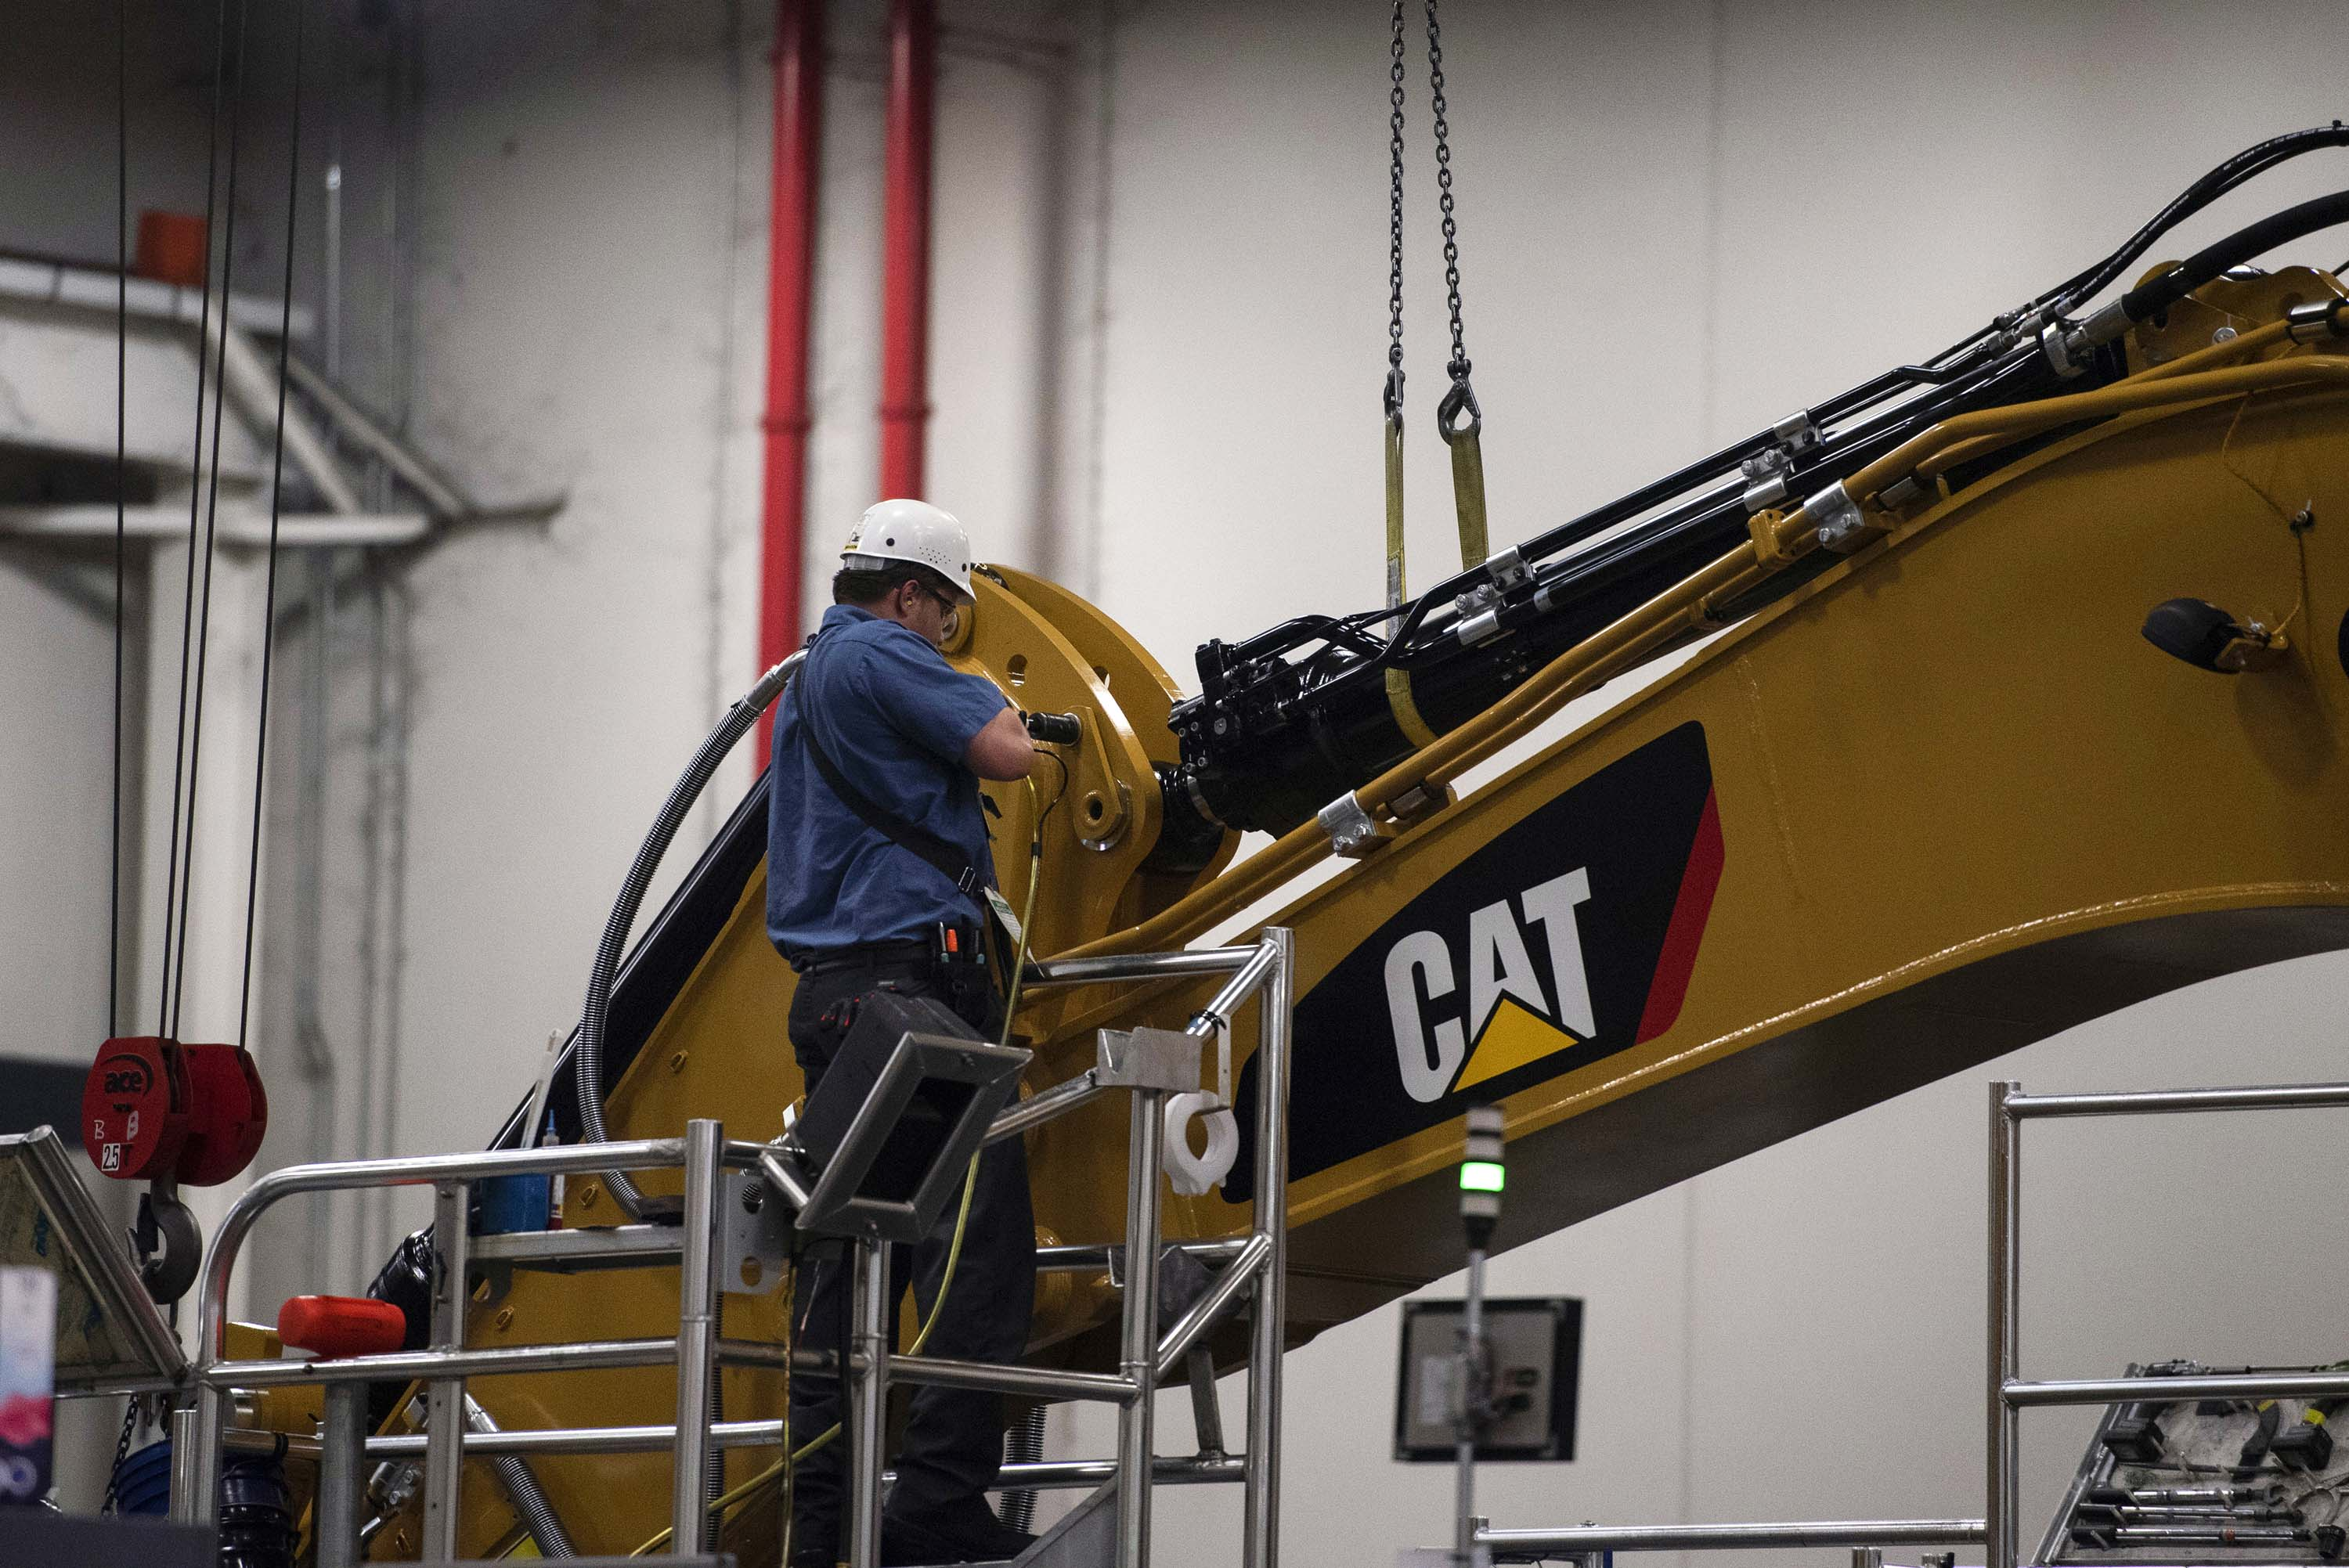 An employee assembles an excavator stick at the Caterpillar Inc. manufacturing facility in Victoria, Texas, in August 2018.